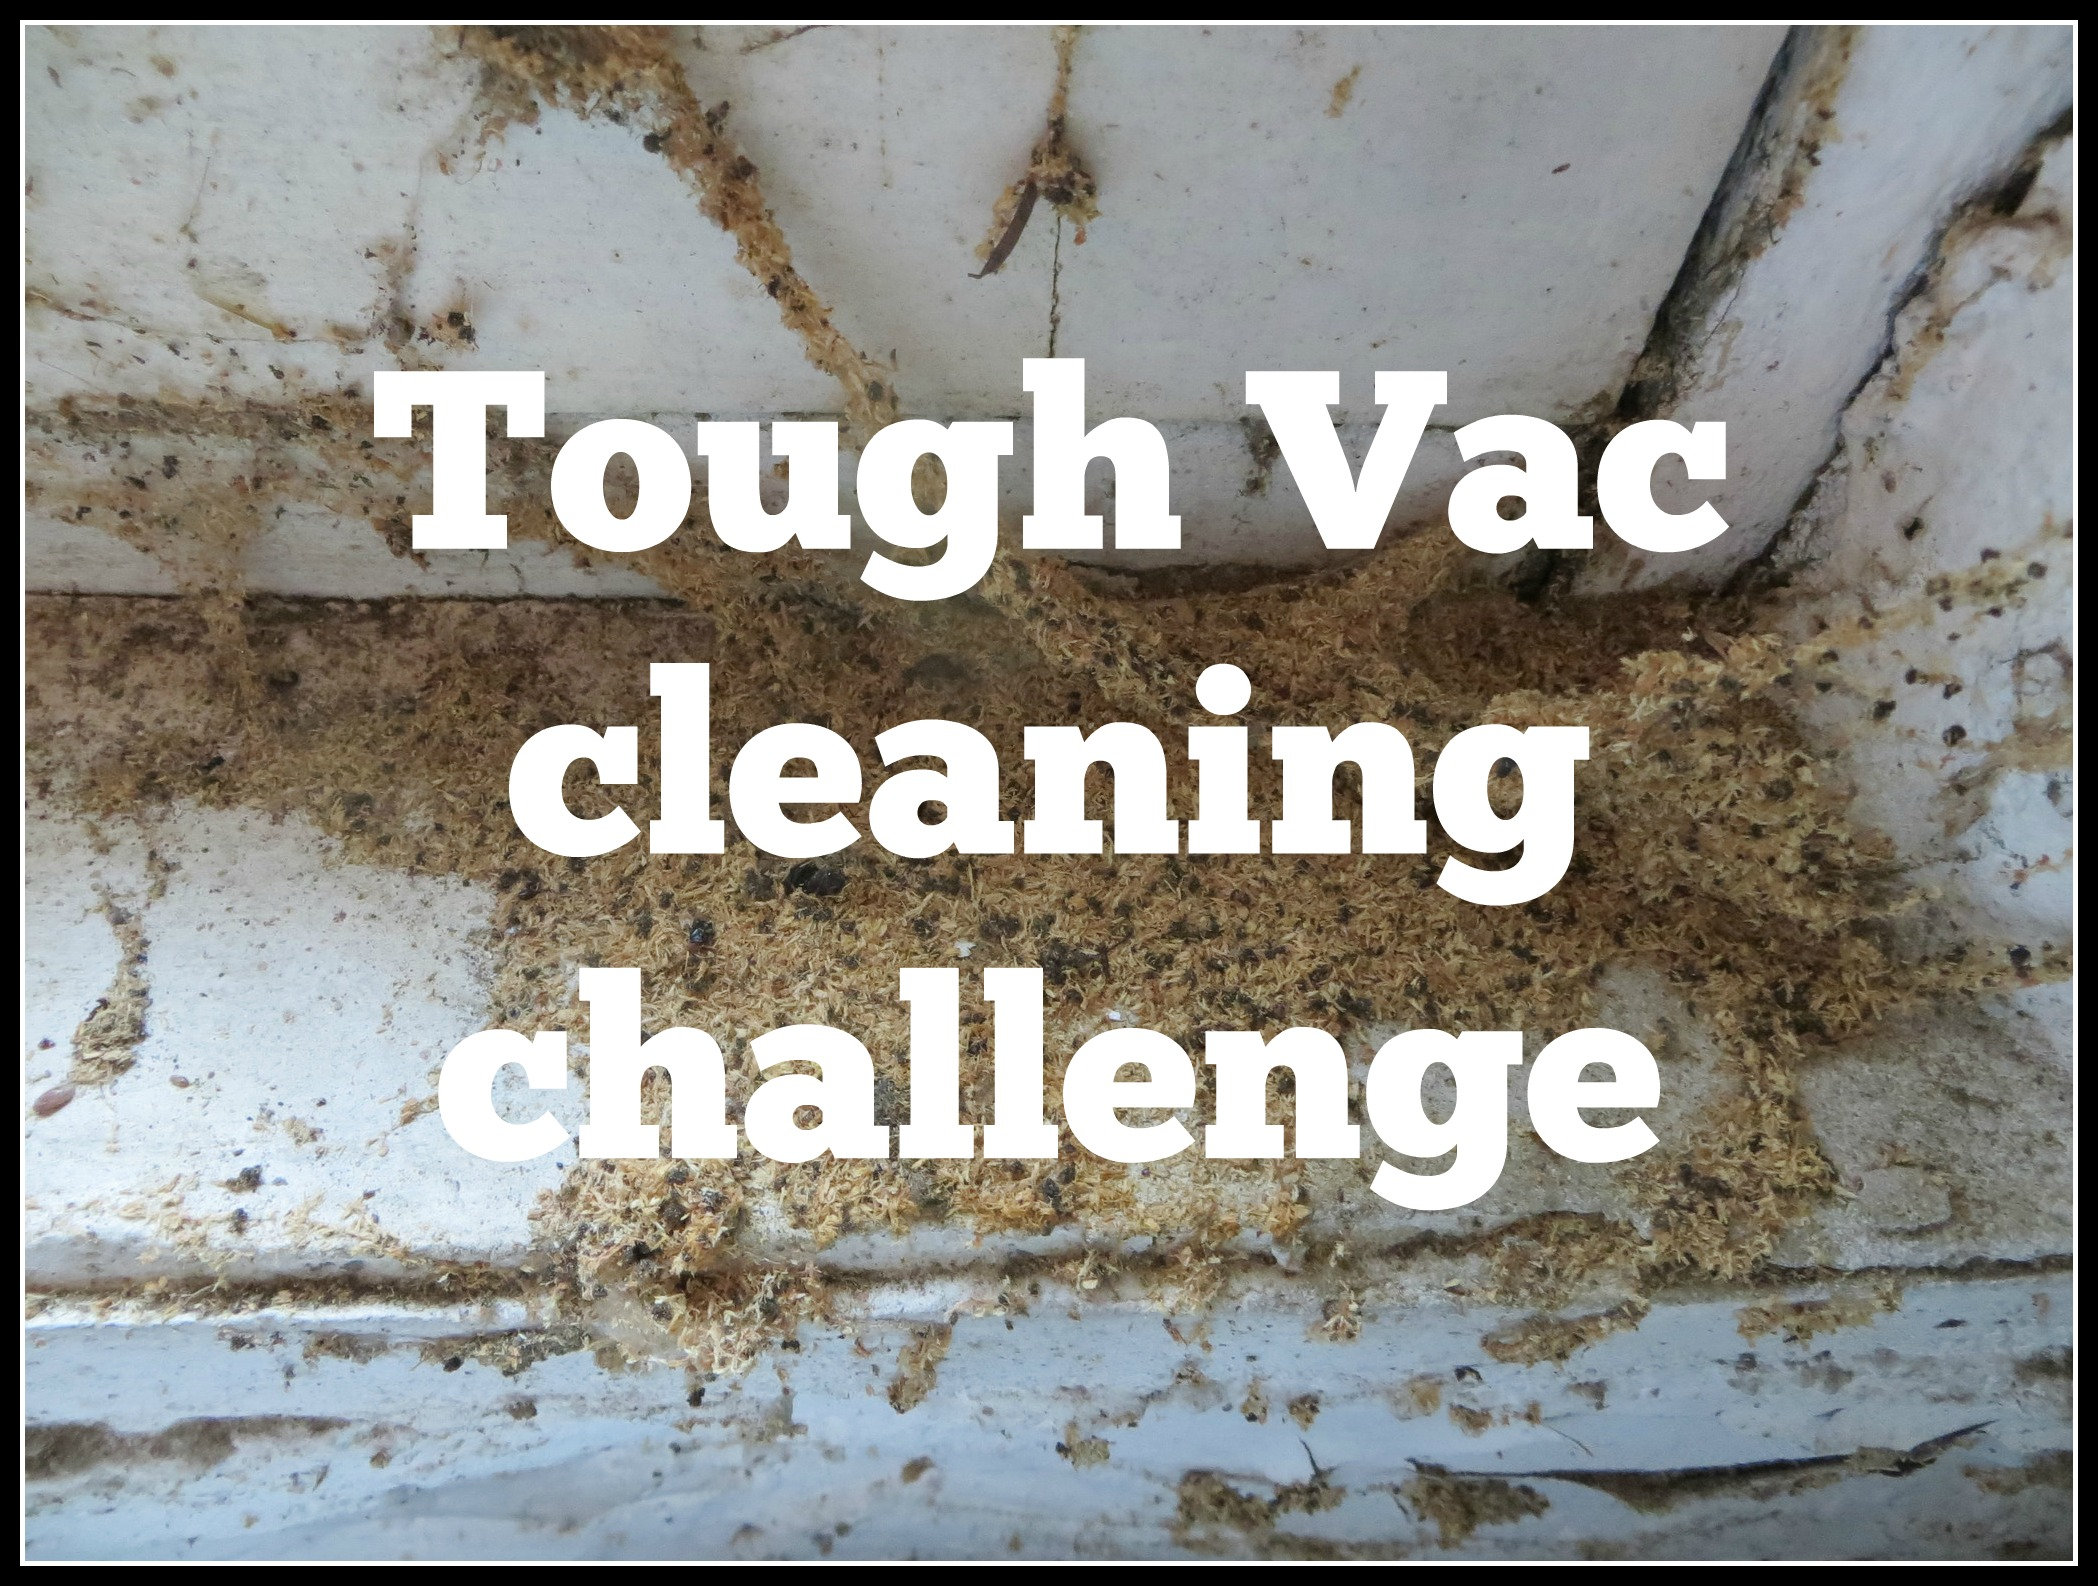 Tough Vac cleaning challenge